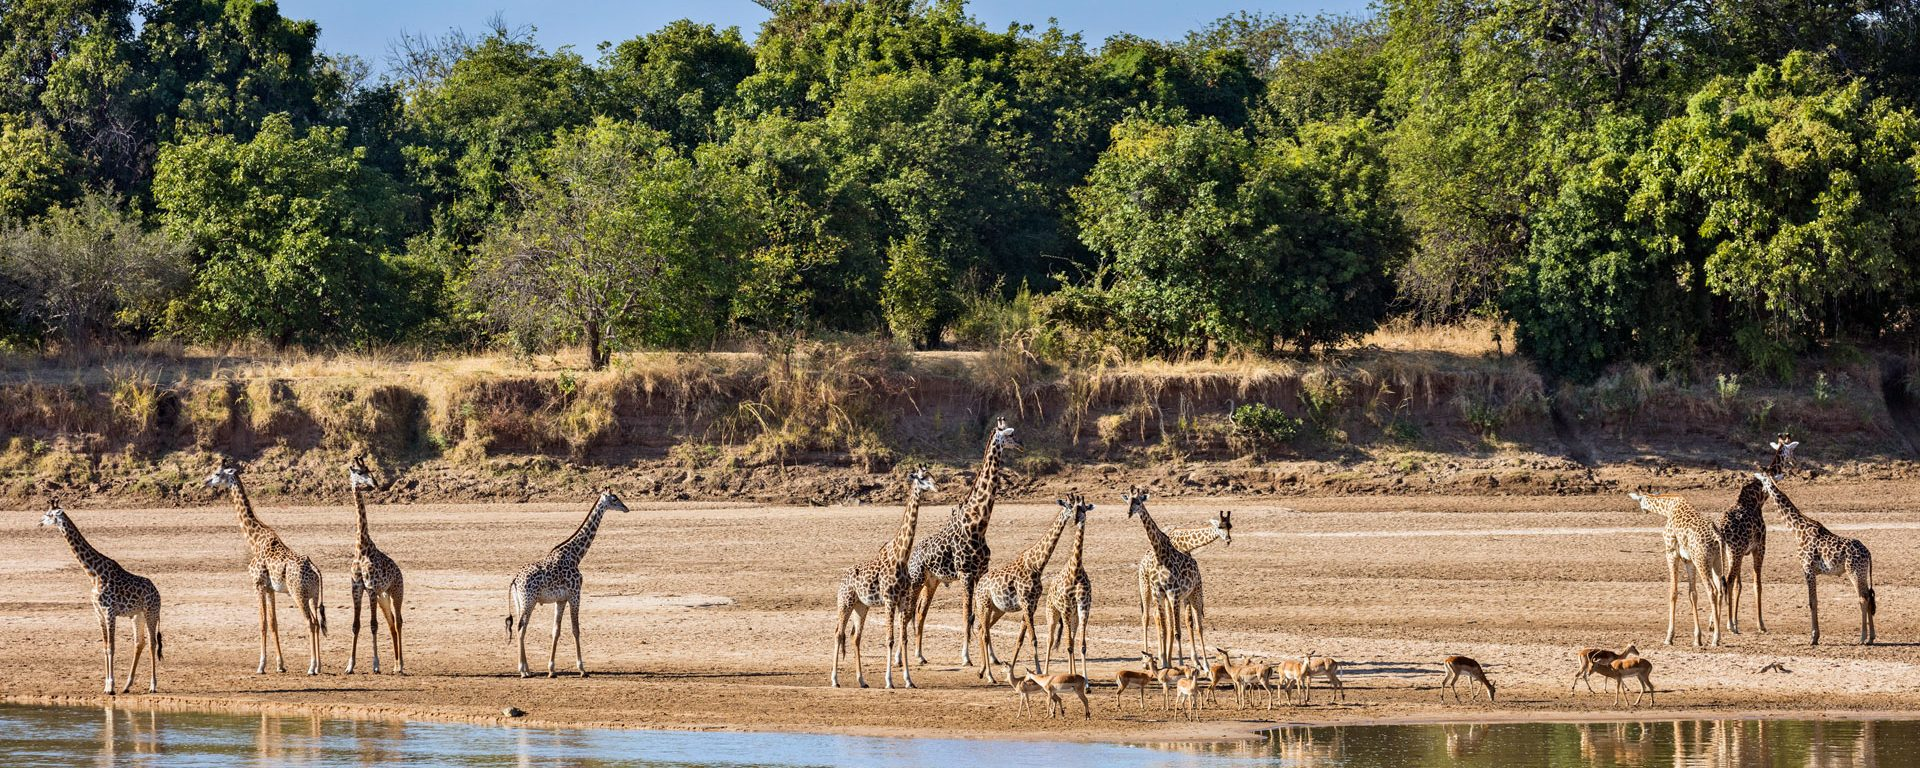 Thornicroft giraffes and impalas beside the Luangwa River, Zambia